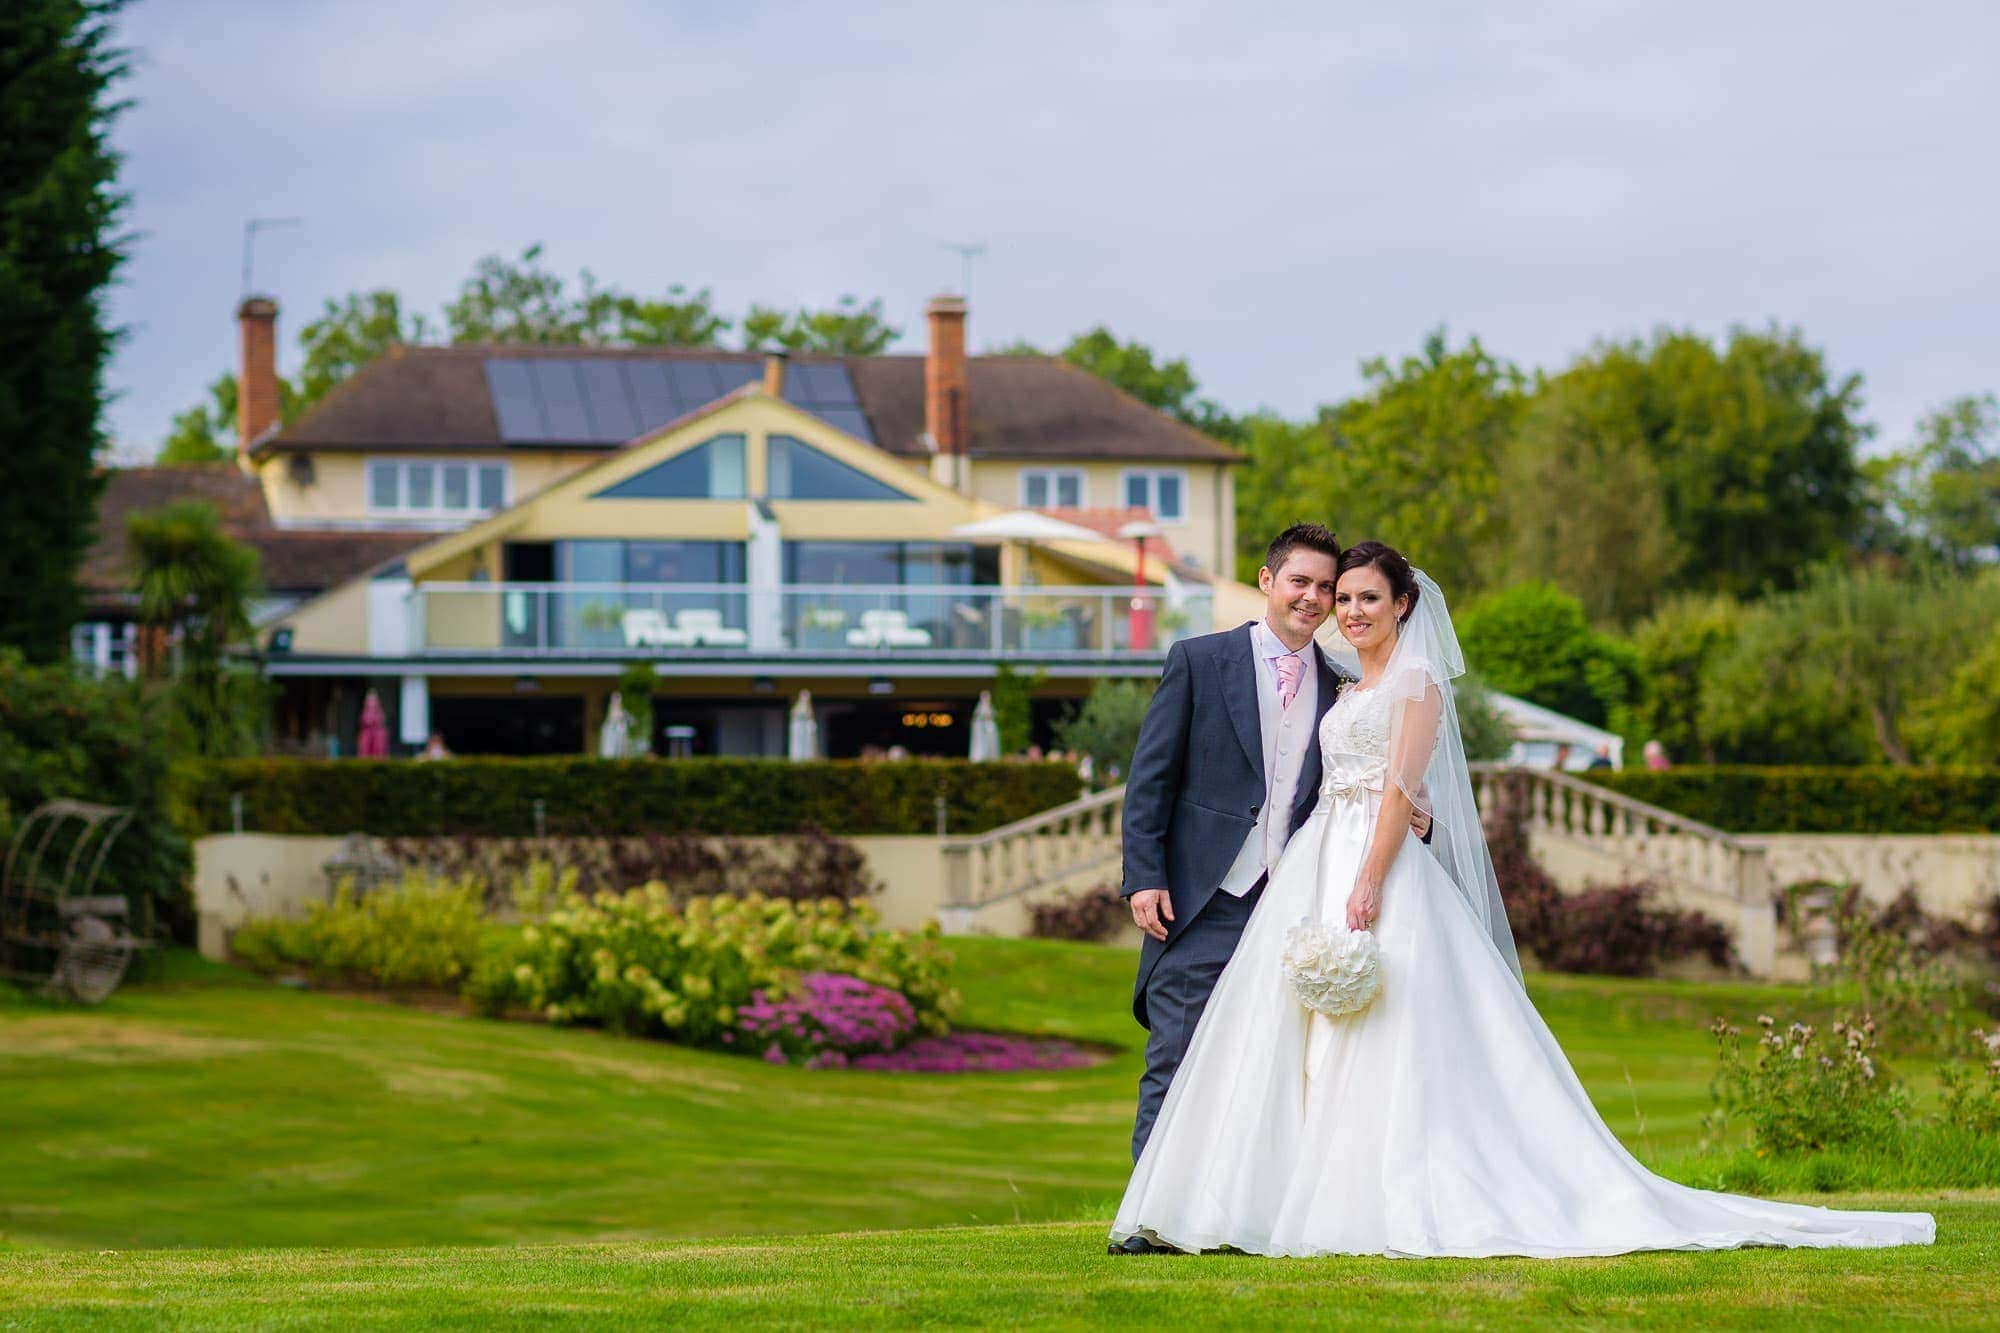 Wedding Reception at Russets Country House Wedding Portrait